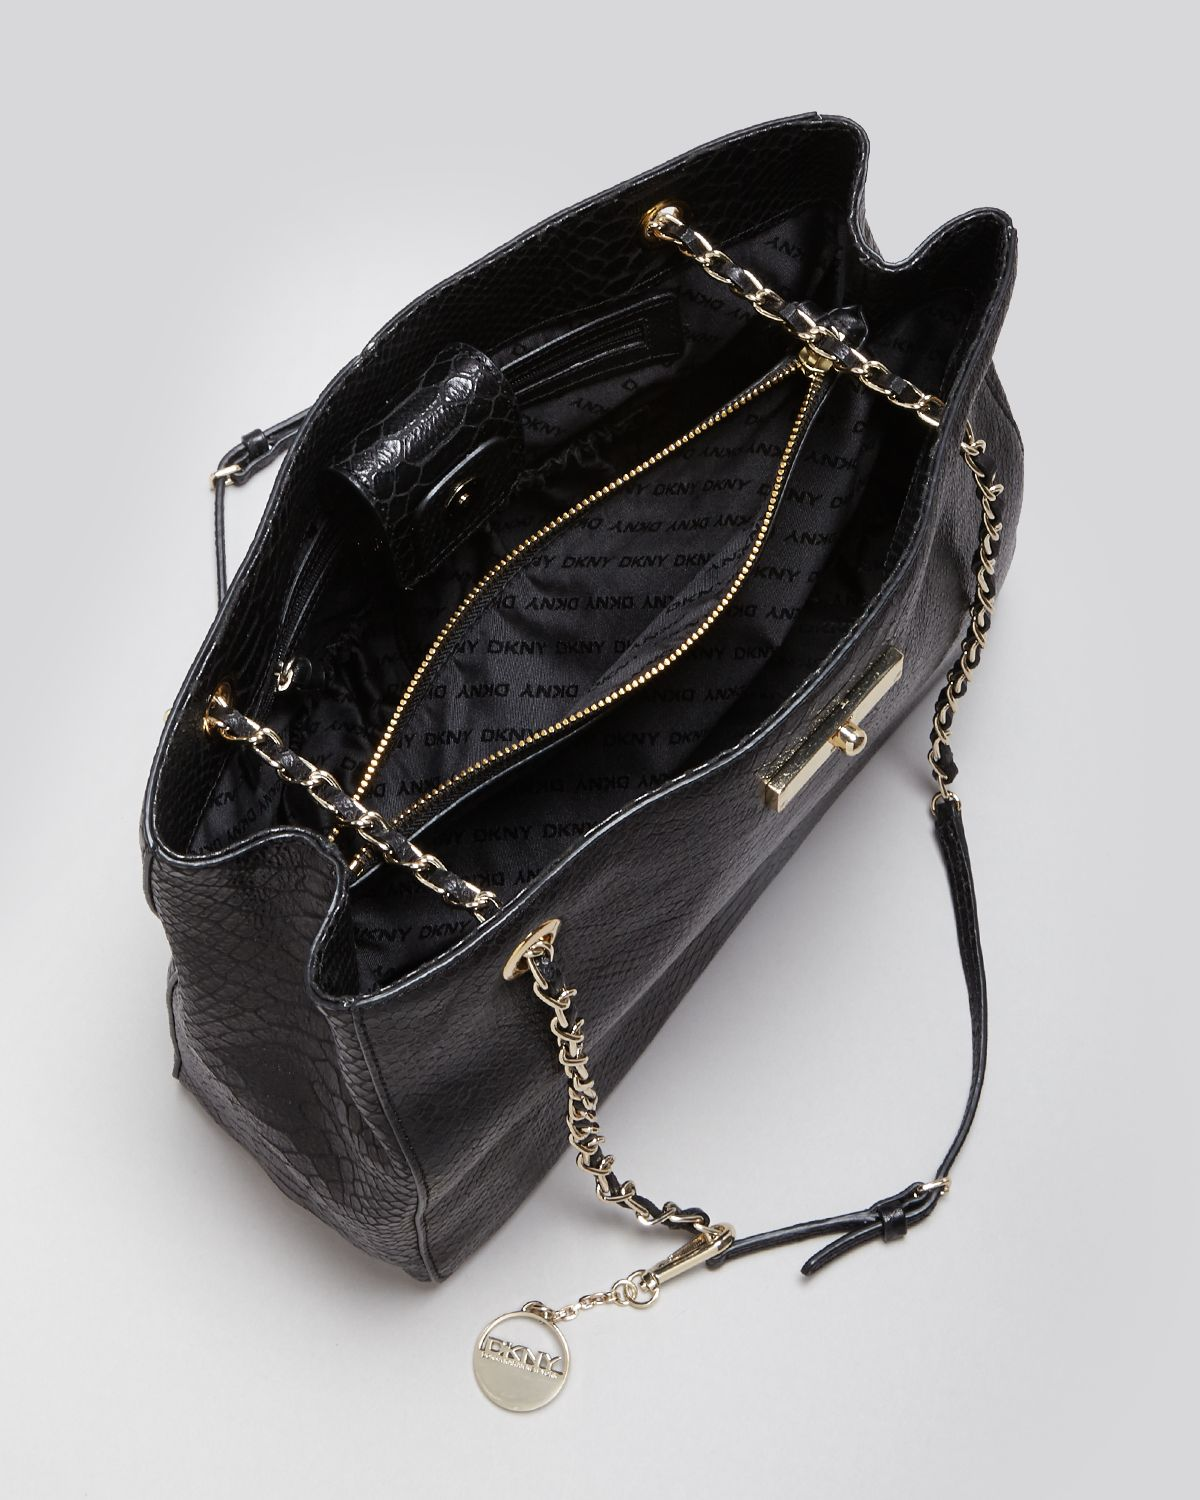 Black Leather Handbag Chain Strap Photos Eleventyone